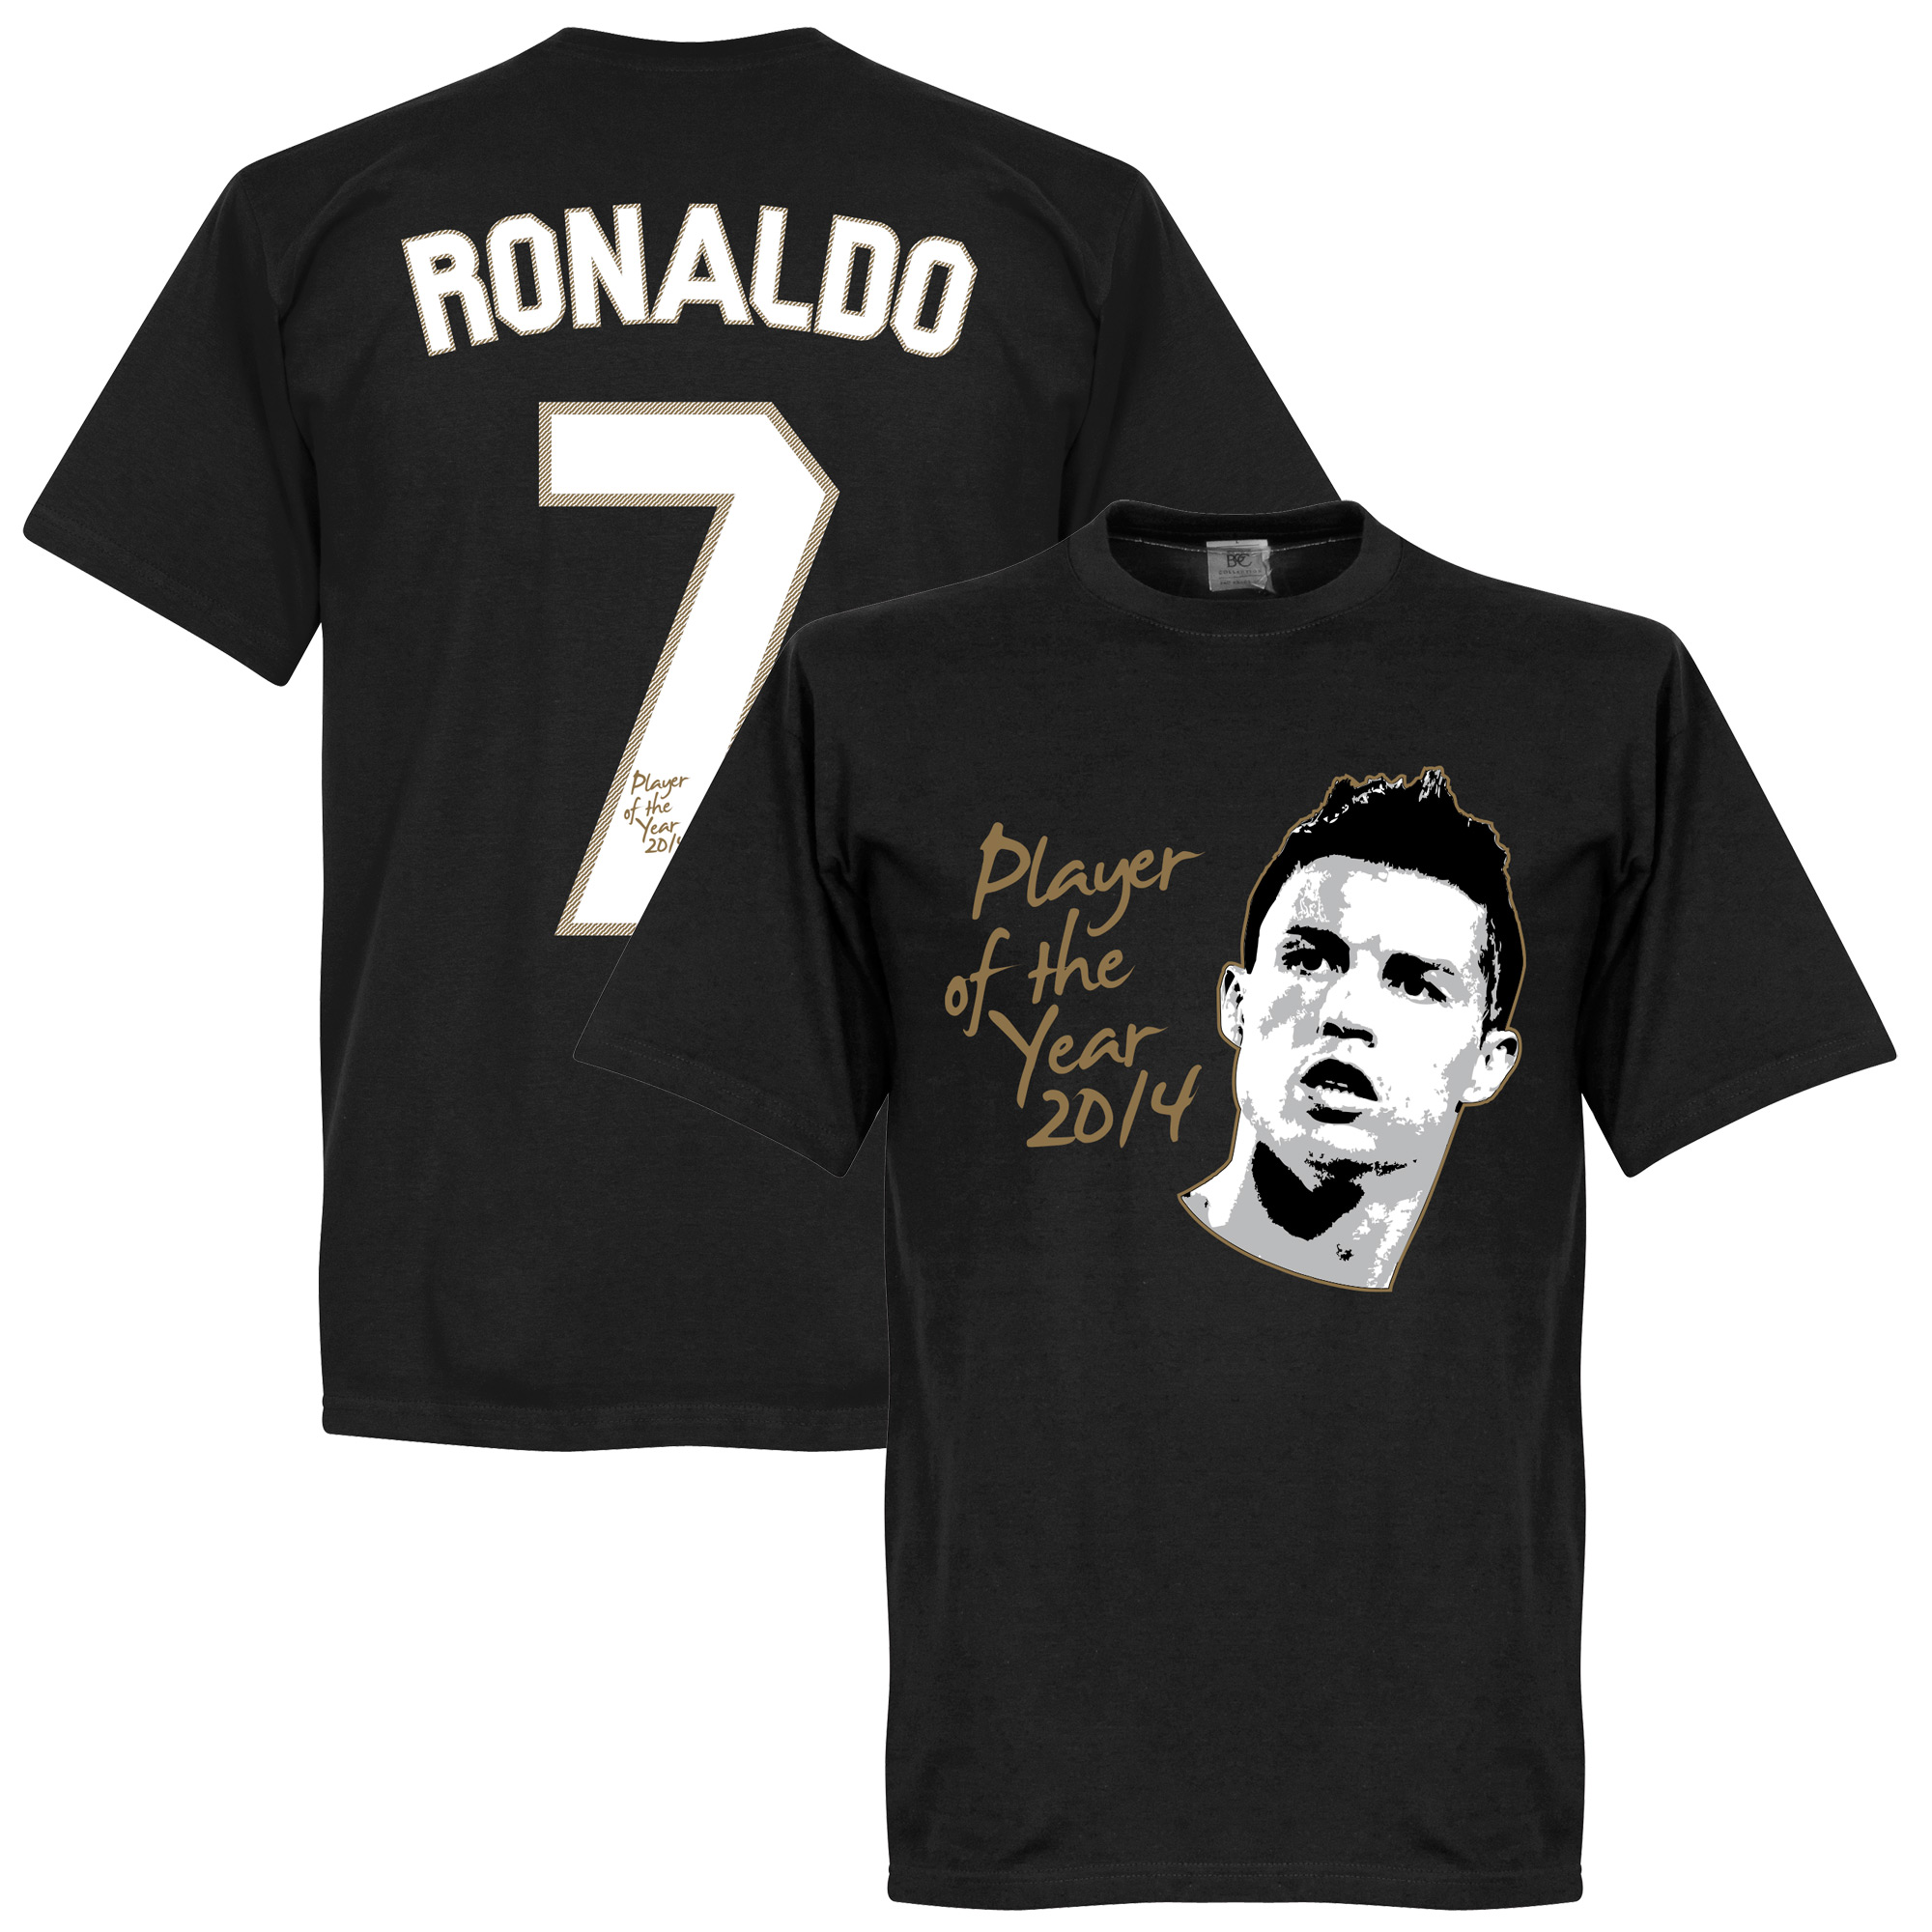 Ronaldo Player of the Year Tee - Black - L